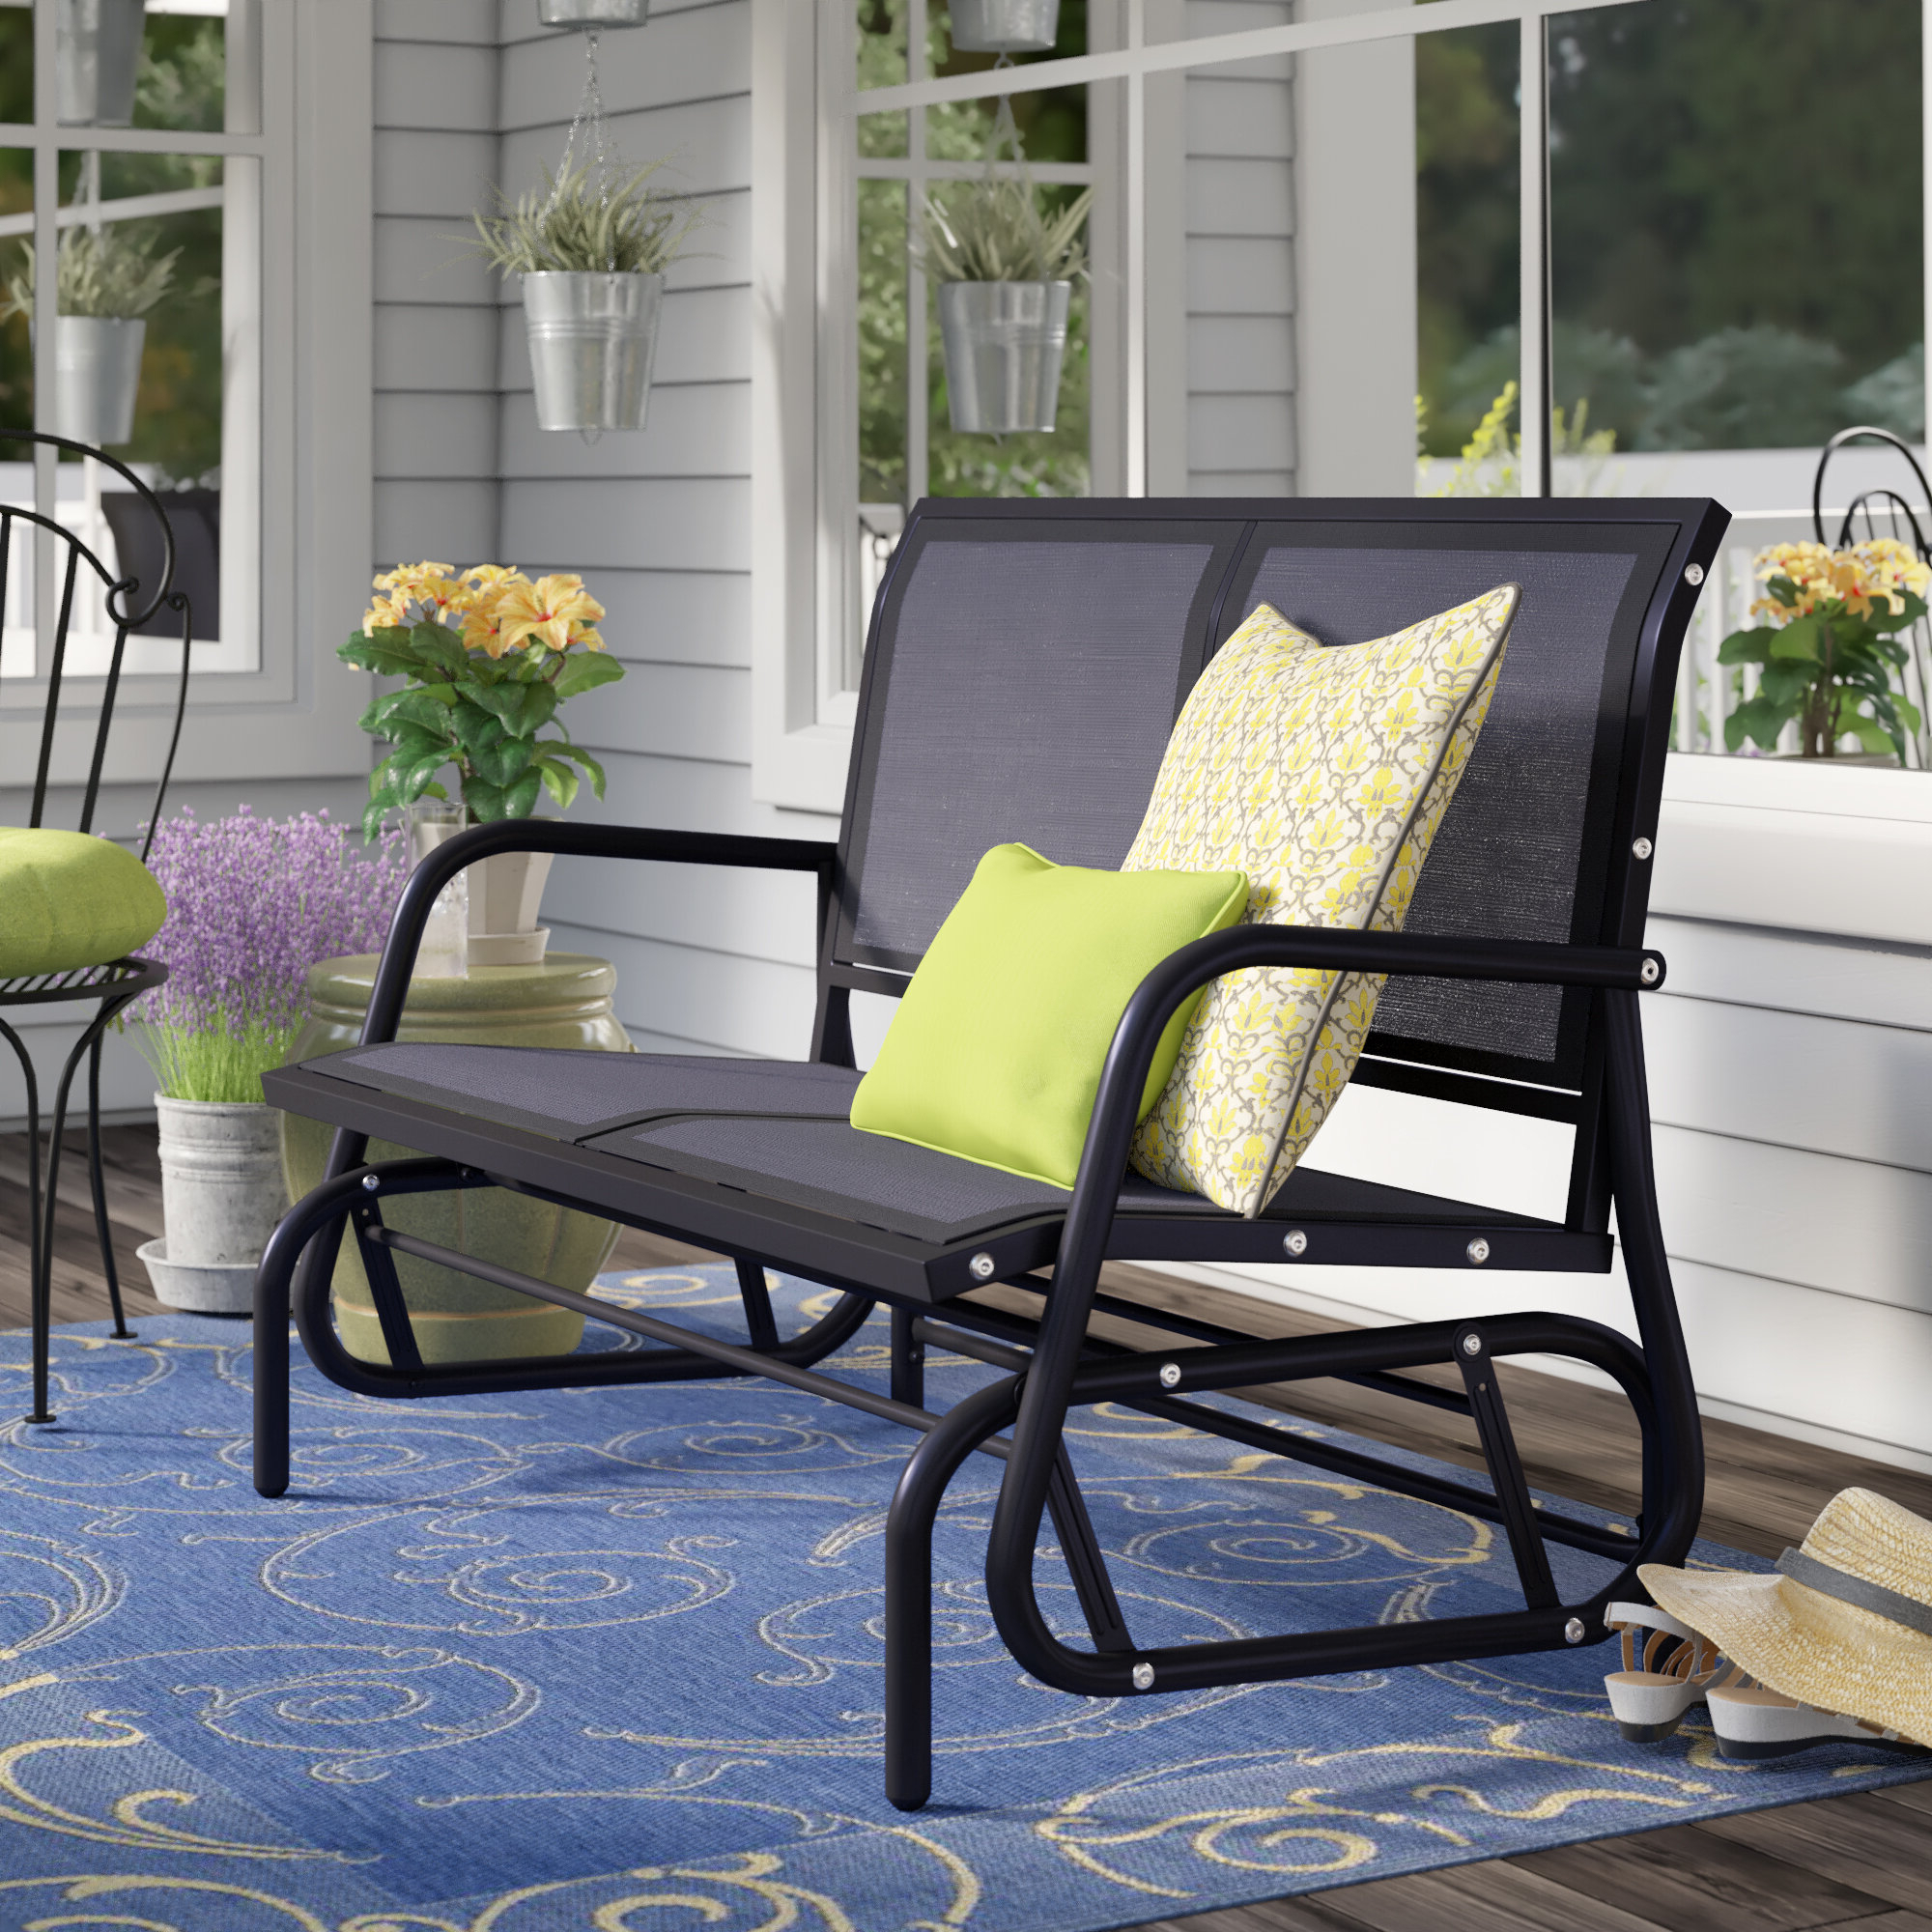 Center Table Double Glider Benches Throughout Well Known Patio Glider With Table (Gallery 22 of 30)